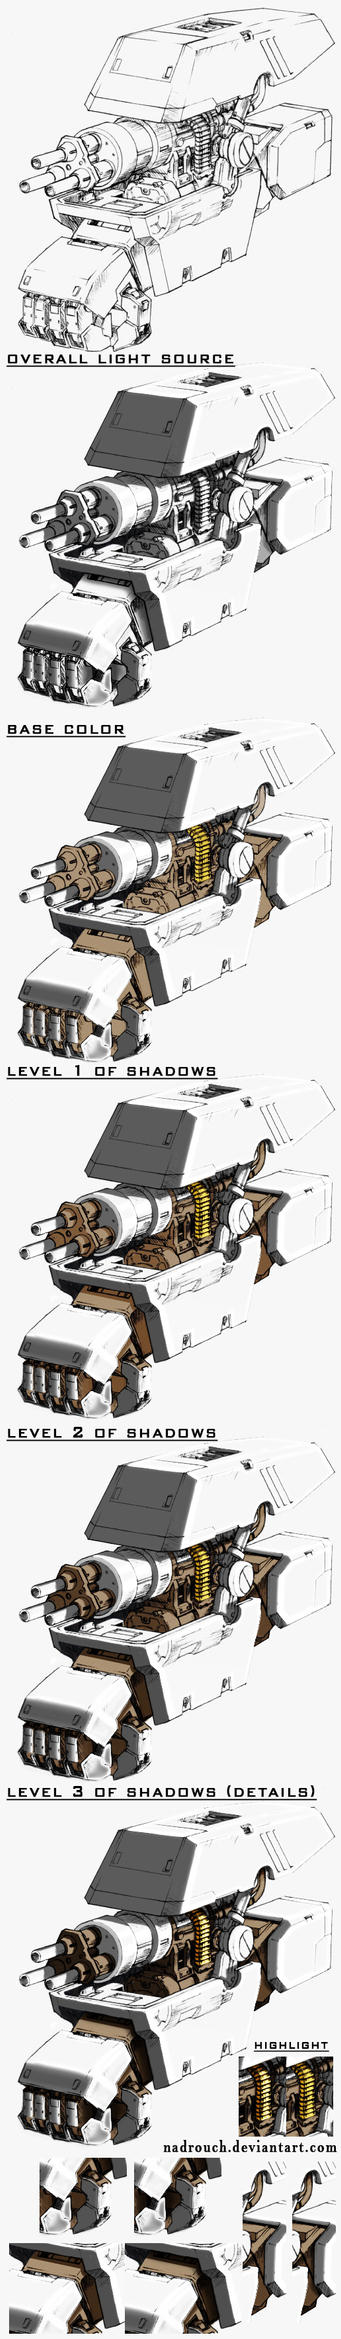 Robotic hand lineart drawing shadows #PART5 by nadrouch